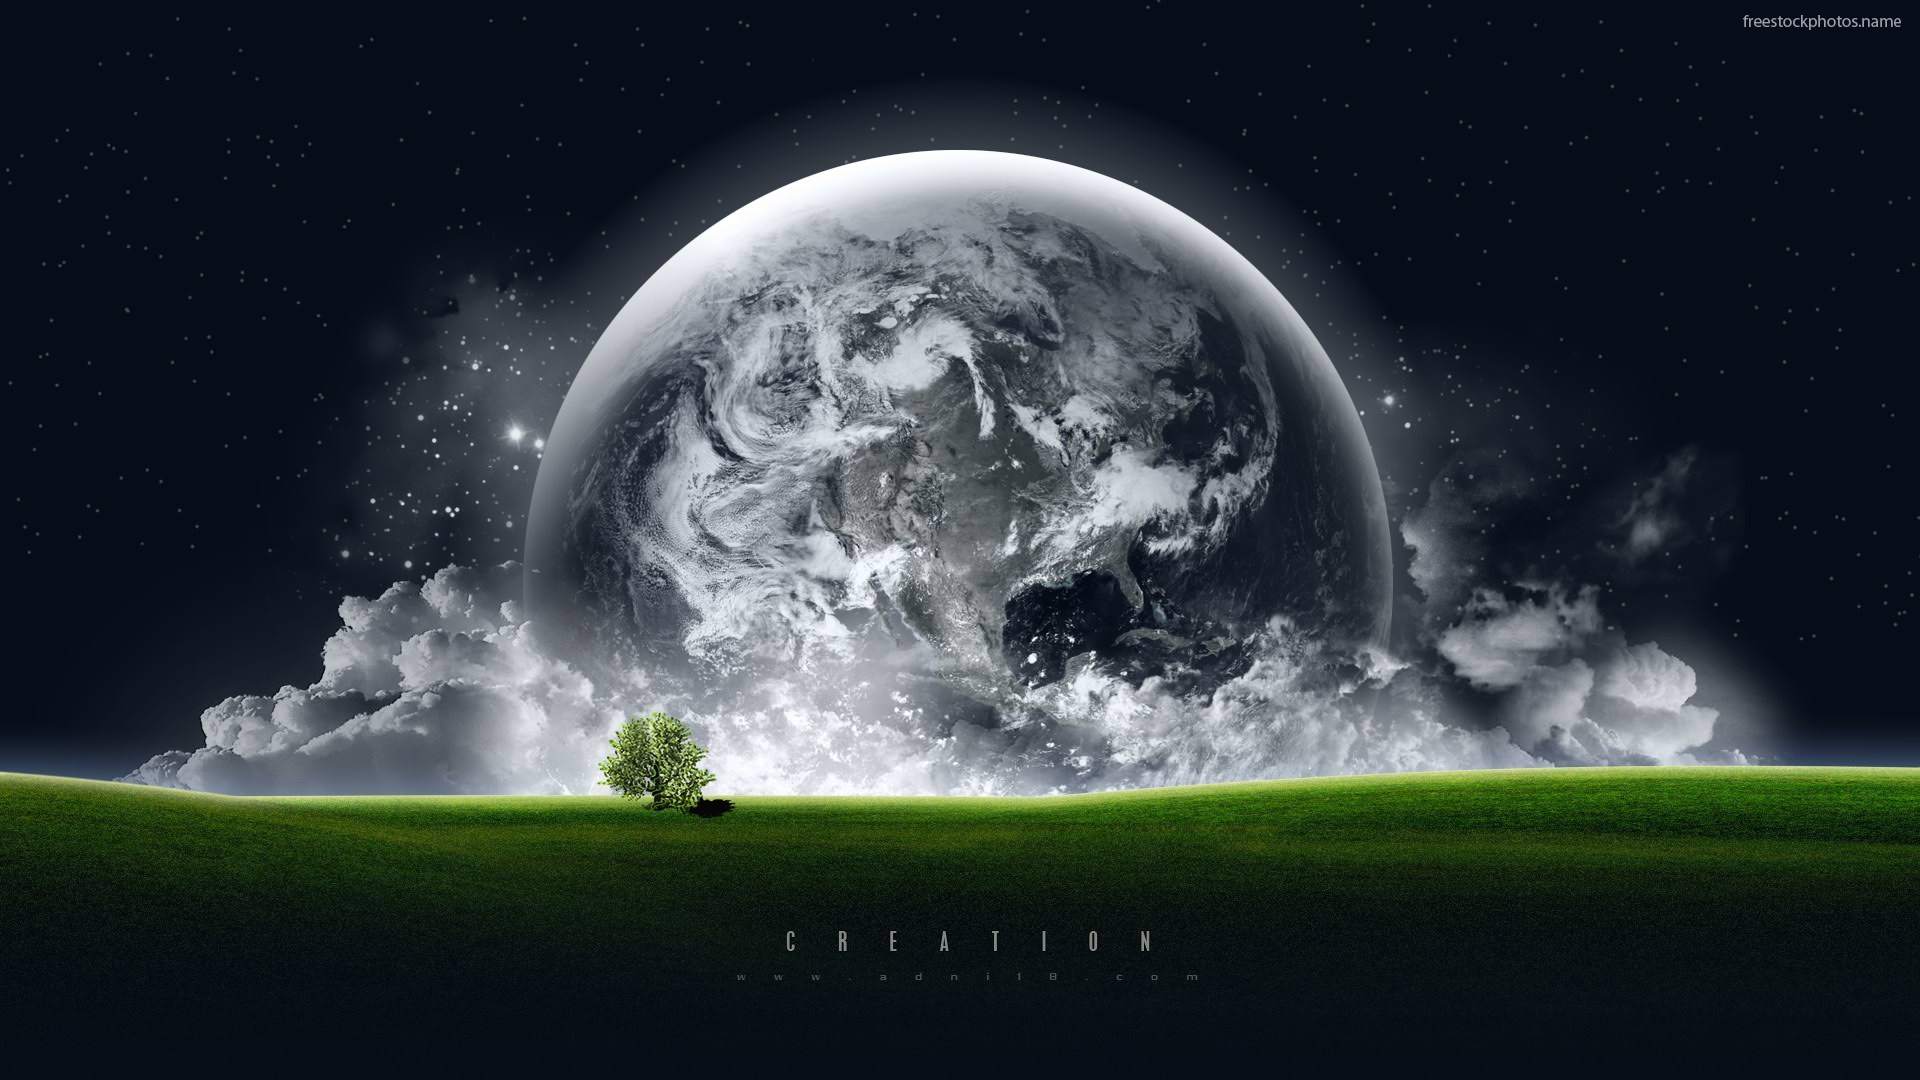 Download Stock Photos of planet earth green field creation hd images 1920x1080